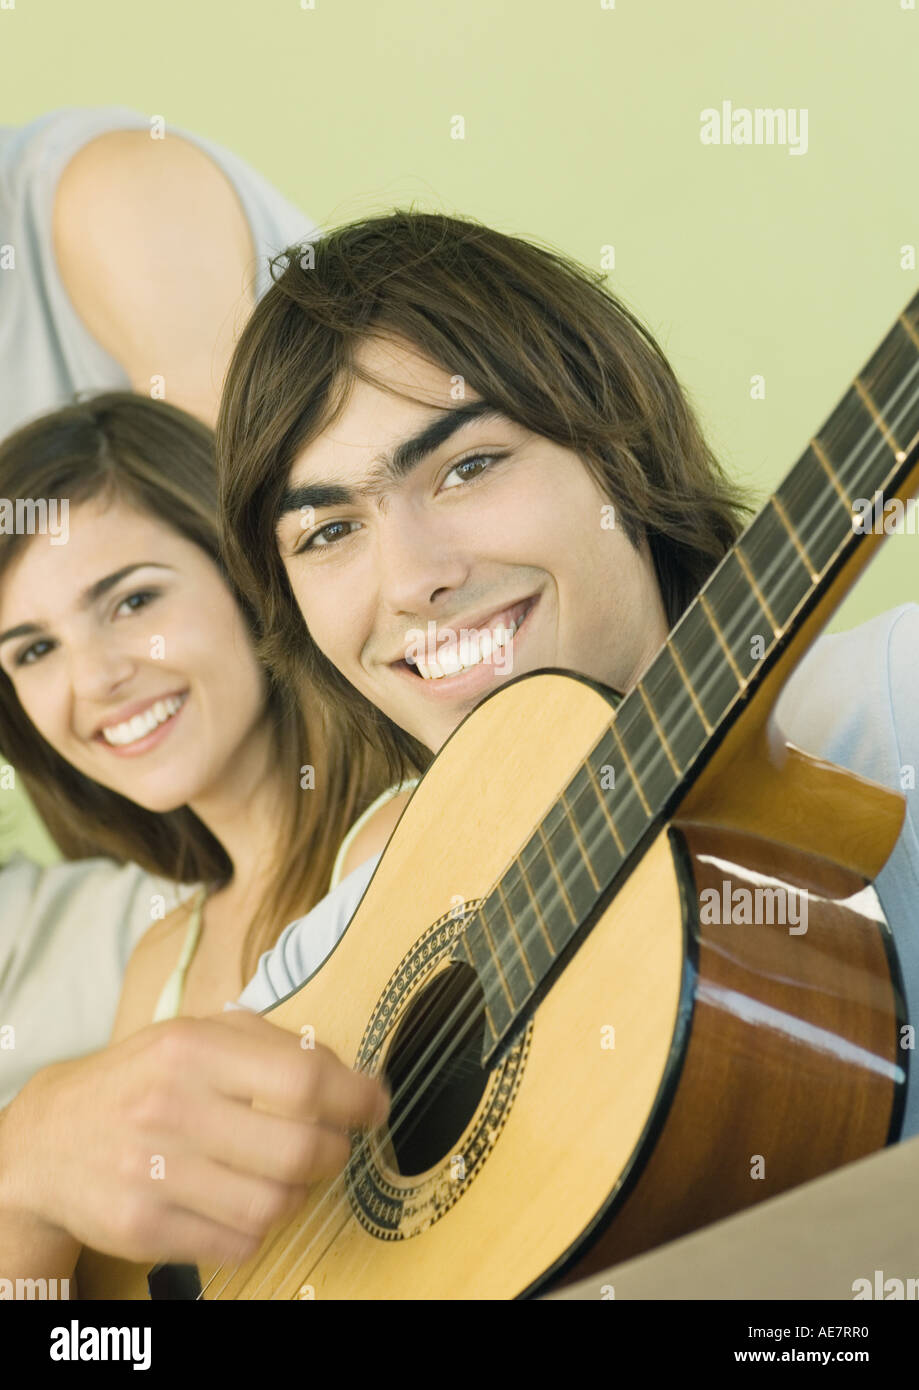 Young man playing guitar for friends - Stock Image